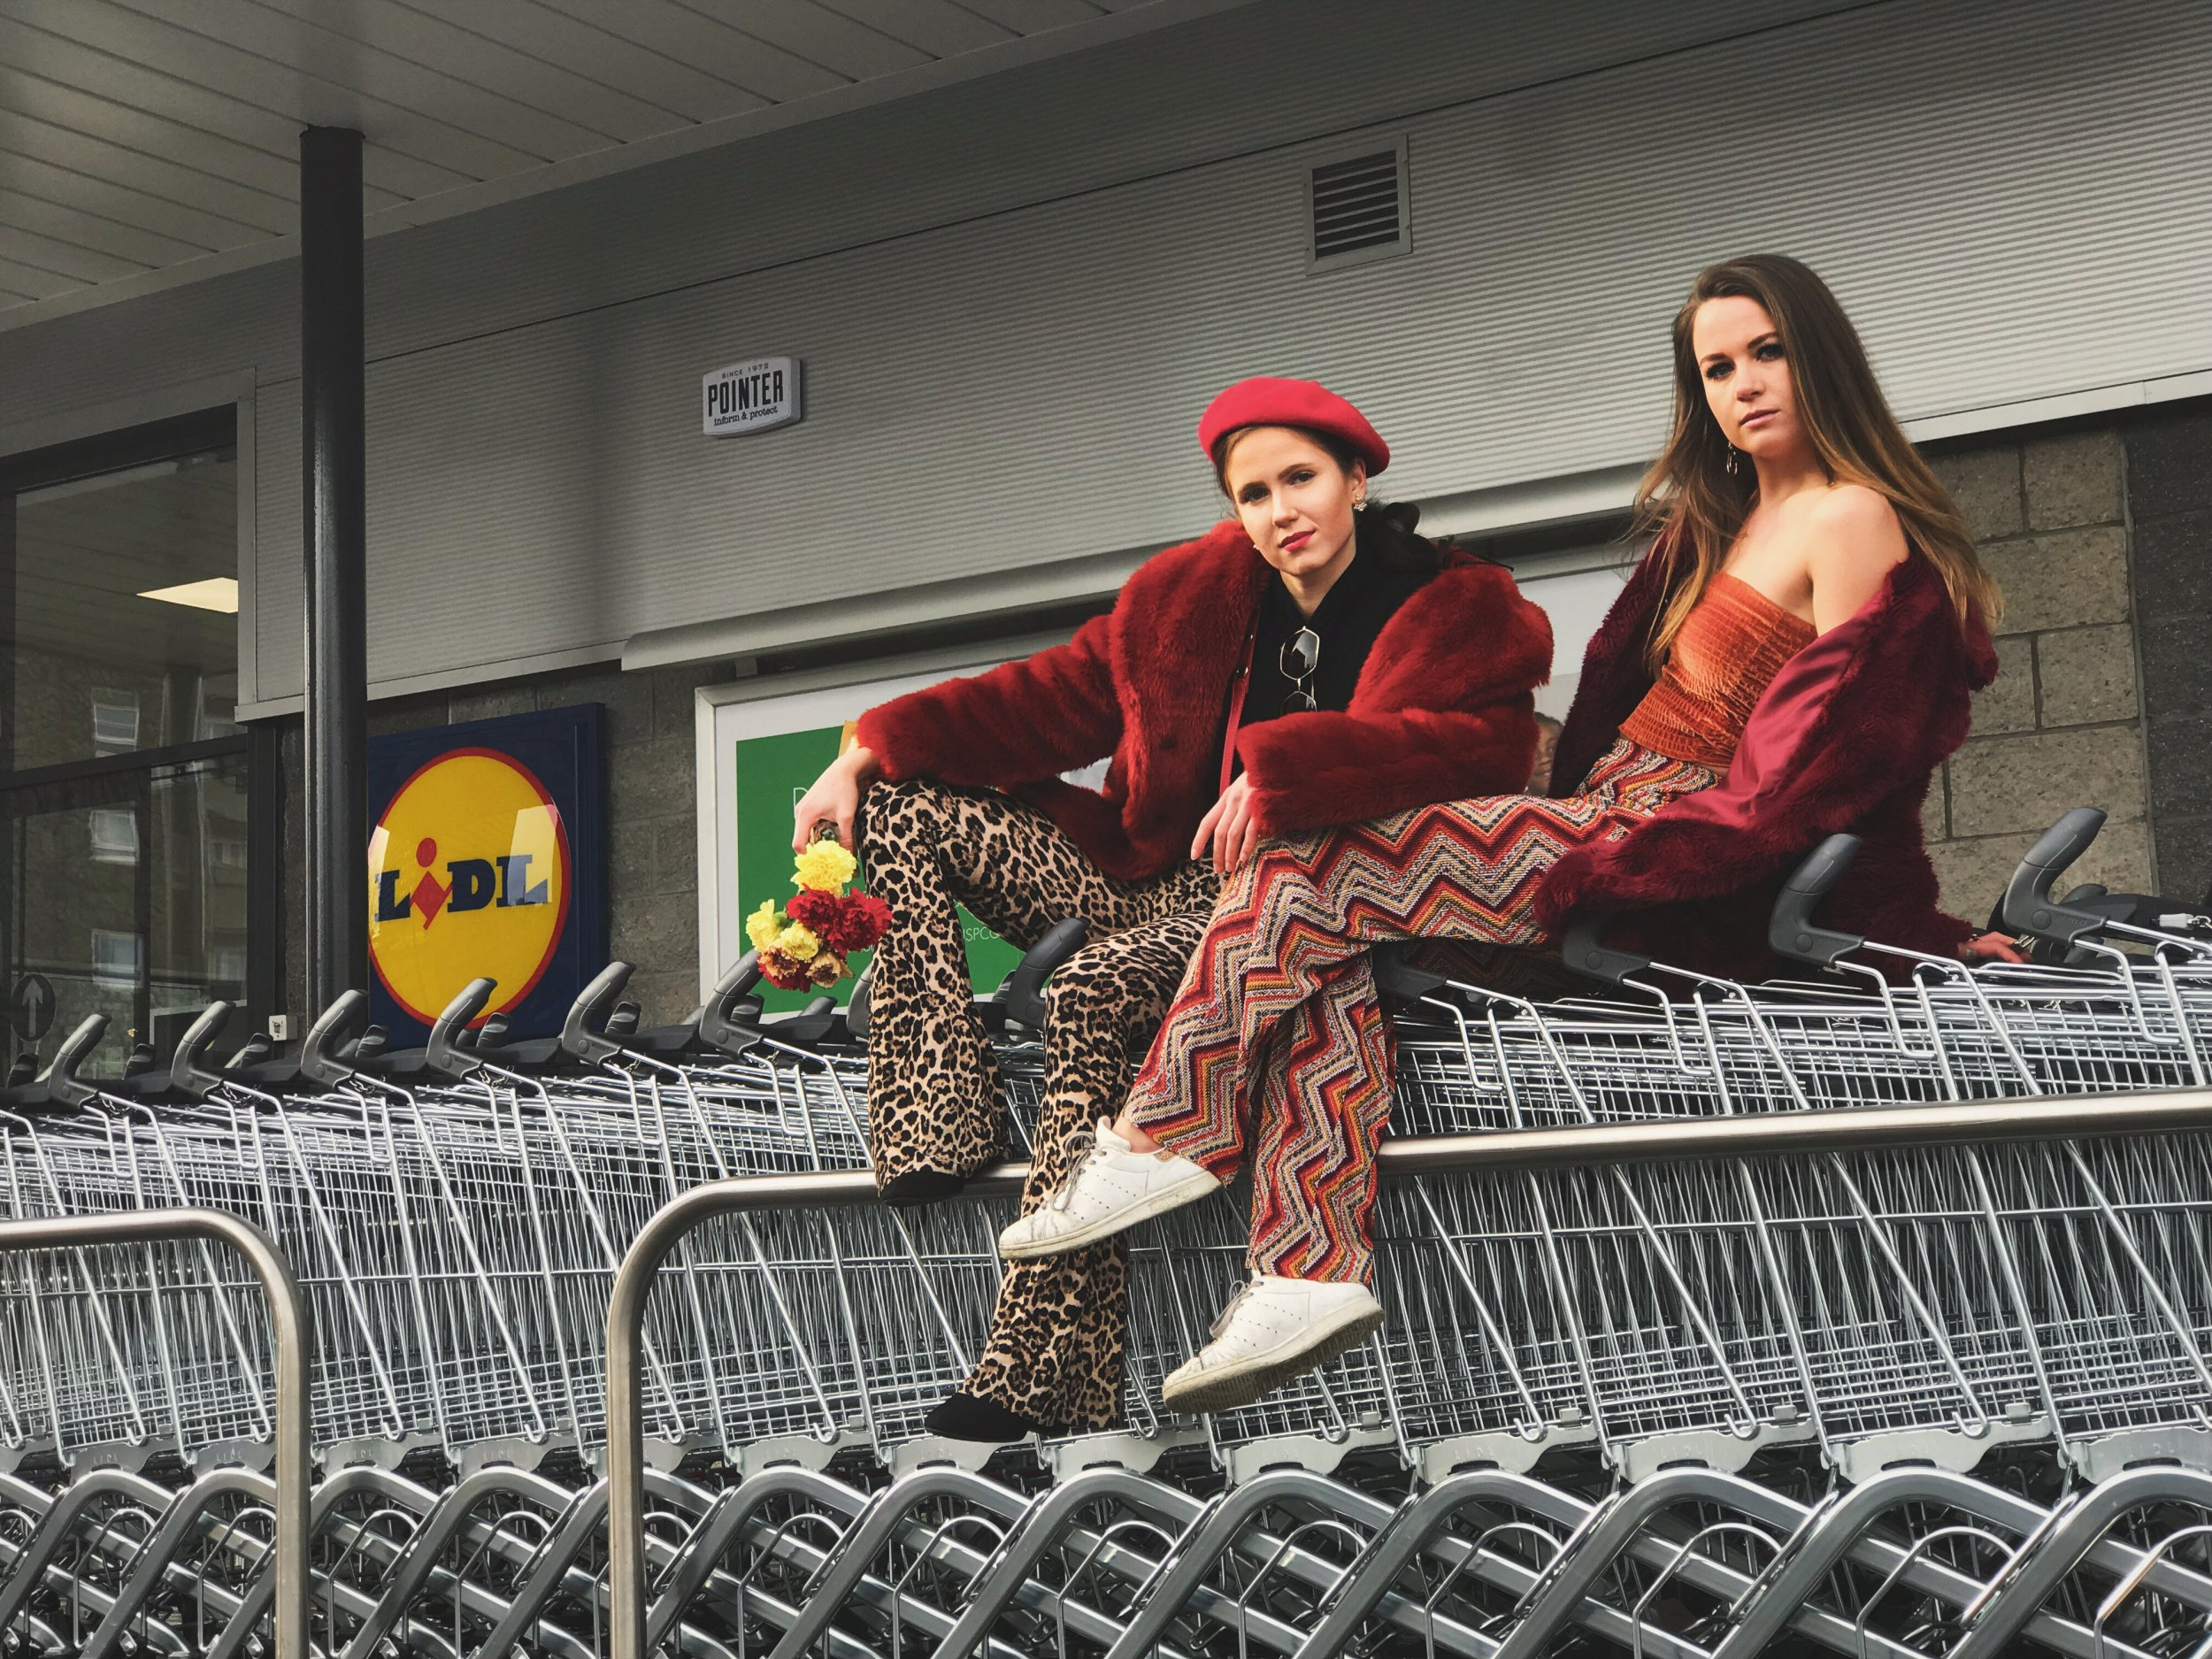 """Ella T?yryl? (left) and Bridget von Freytag Drabbe poses for a fashion shoot for student Elsa Papa at a Lidl store on Hutcheon Street in Aberdeen. See SWNS story SWSClidl; A student and her friends have carried out the world's first fashion shoot - in a Lidl. Elsa Papa, 22, a fourth year University of Aberdeen student, used her iPhone for the glamorous shots. Ella and pals Hugo, both 22, and Bridget and Emma-Jean, both 21, are spotted posing in aisles holding props such as milk and sitting next to bottles of wine. Elsa, who took the snaps using her iPhone 7 plus, said the opening of Lidl on Hutcheon Street has delighted Aberdeen students and it has become a """"big talking point""""."""